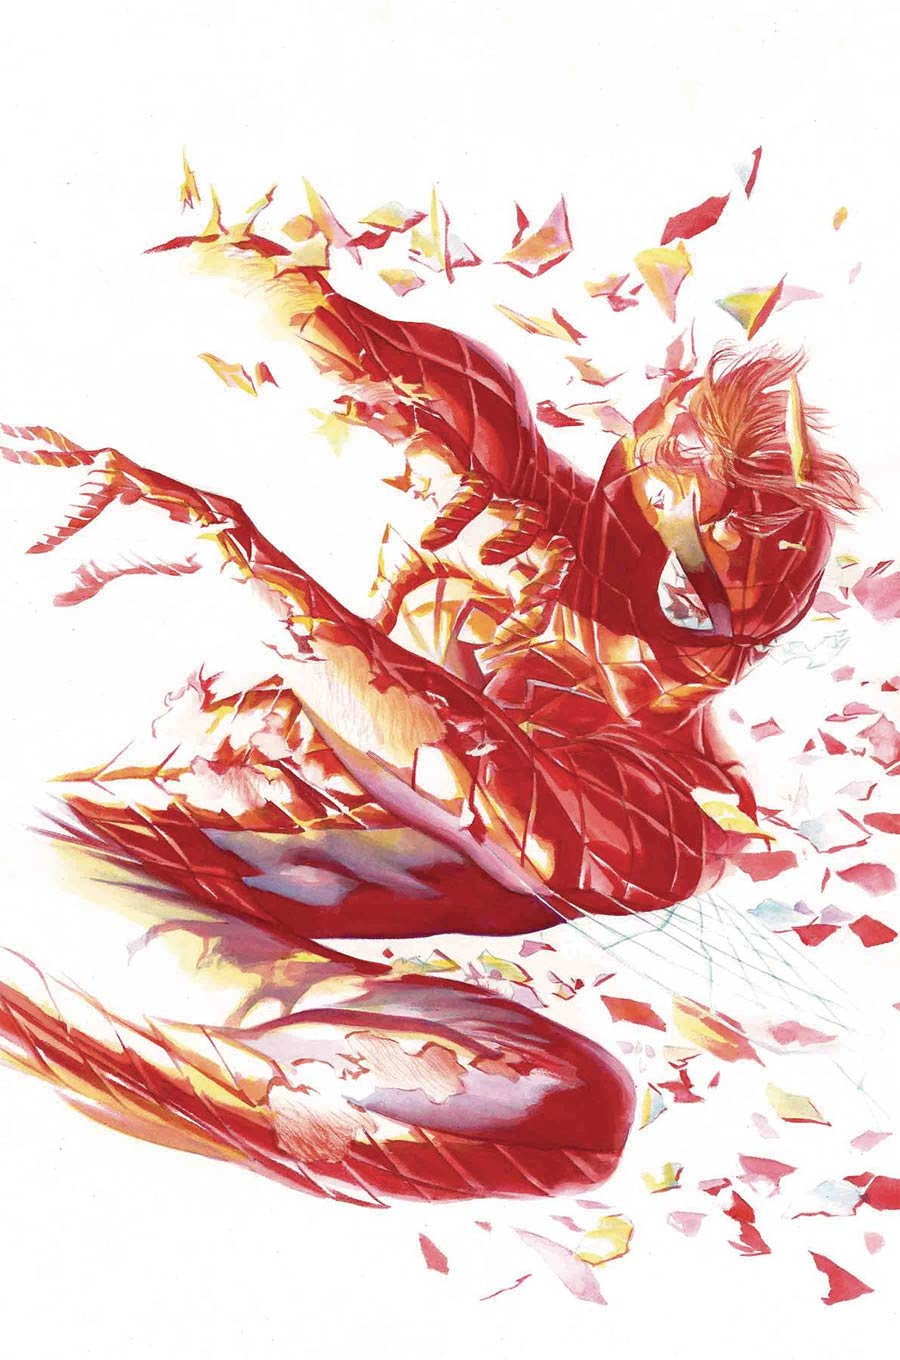 UNDERCOVER evaluates the cover to 'The Amazing Spider-Man' #31